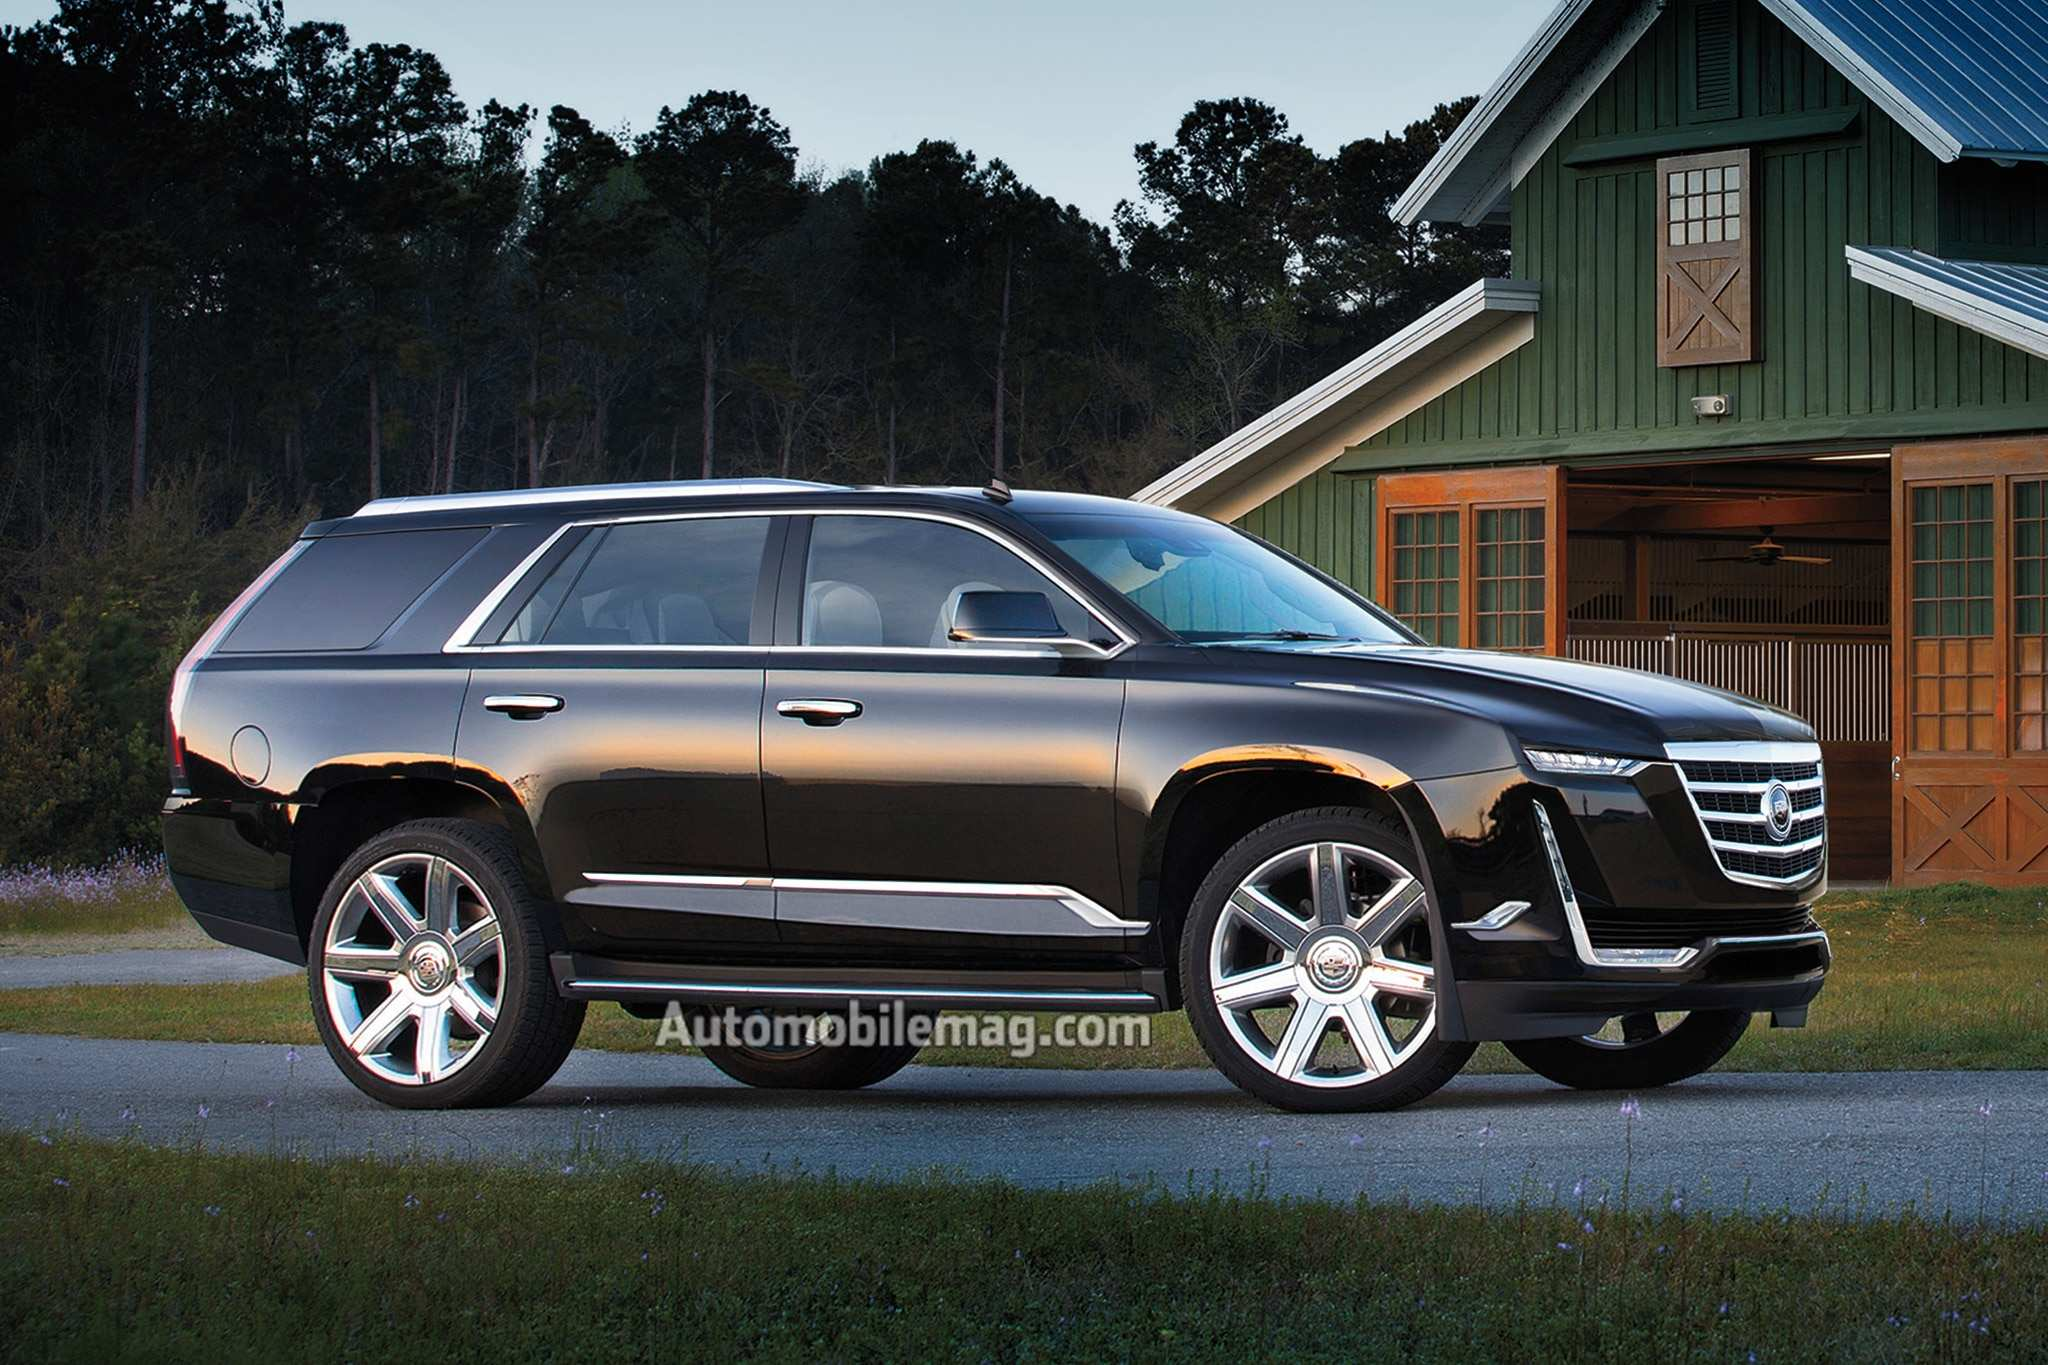 60 A Cadillac Redesign 2020 Rumors